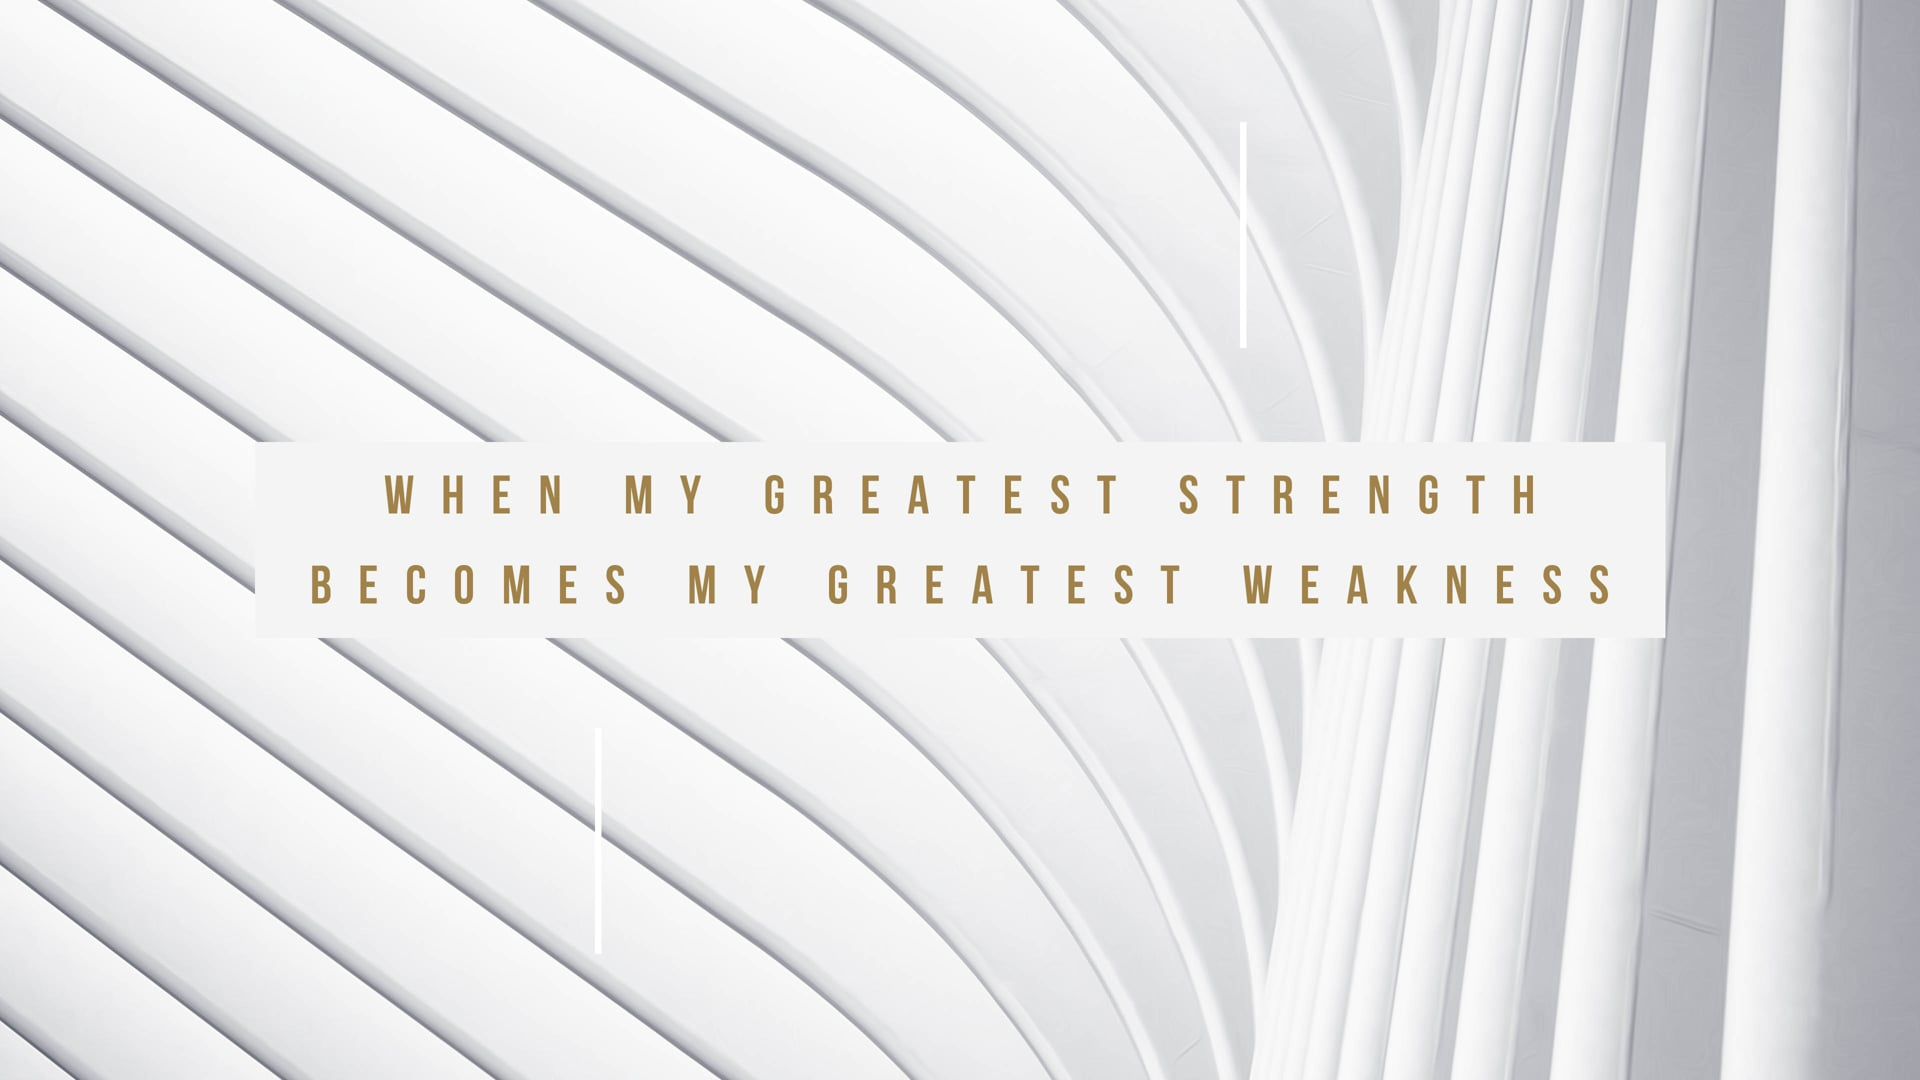 When My Greatest Strength Becomes My Greatest Weakness